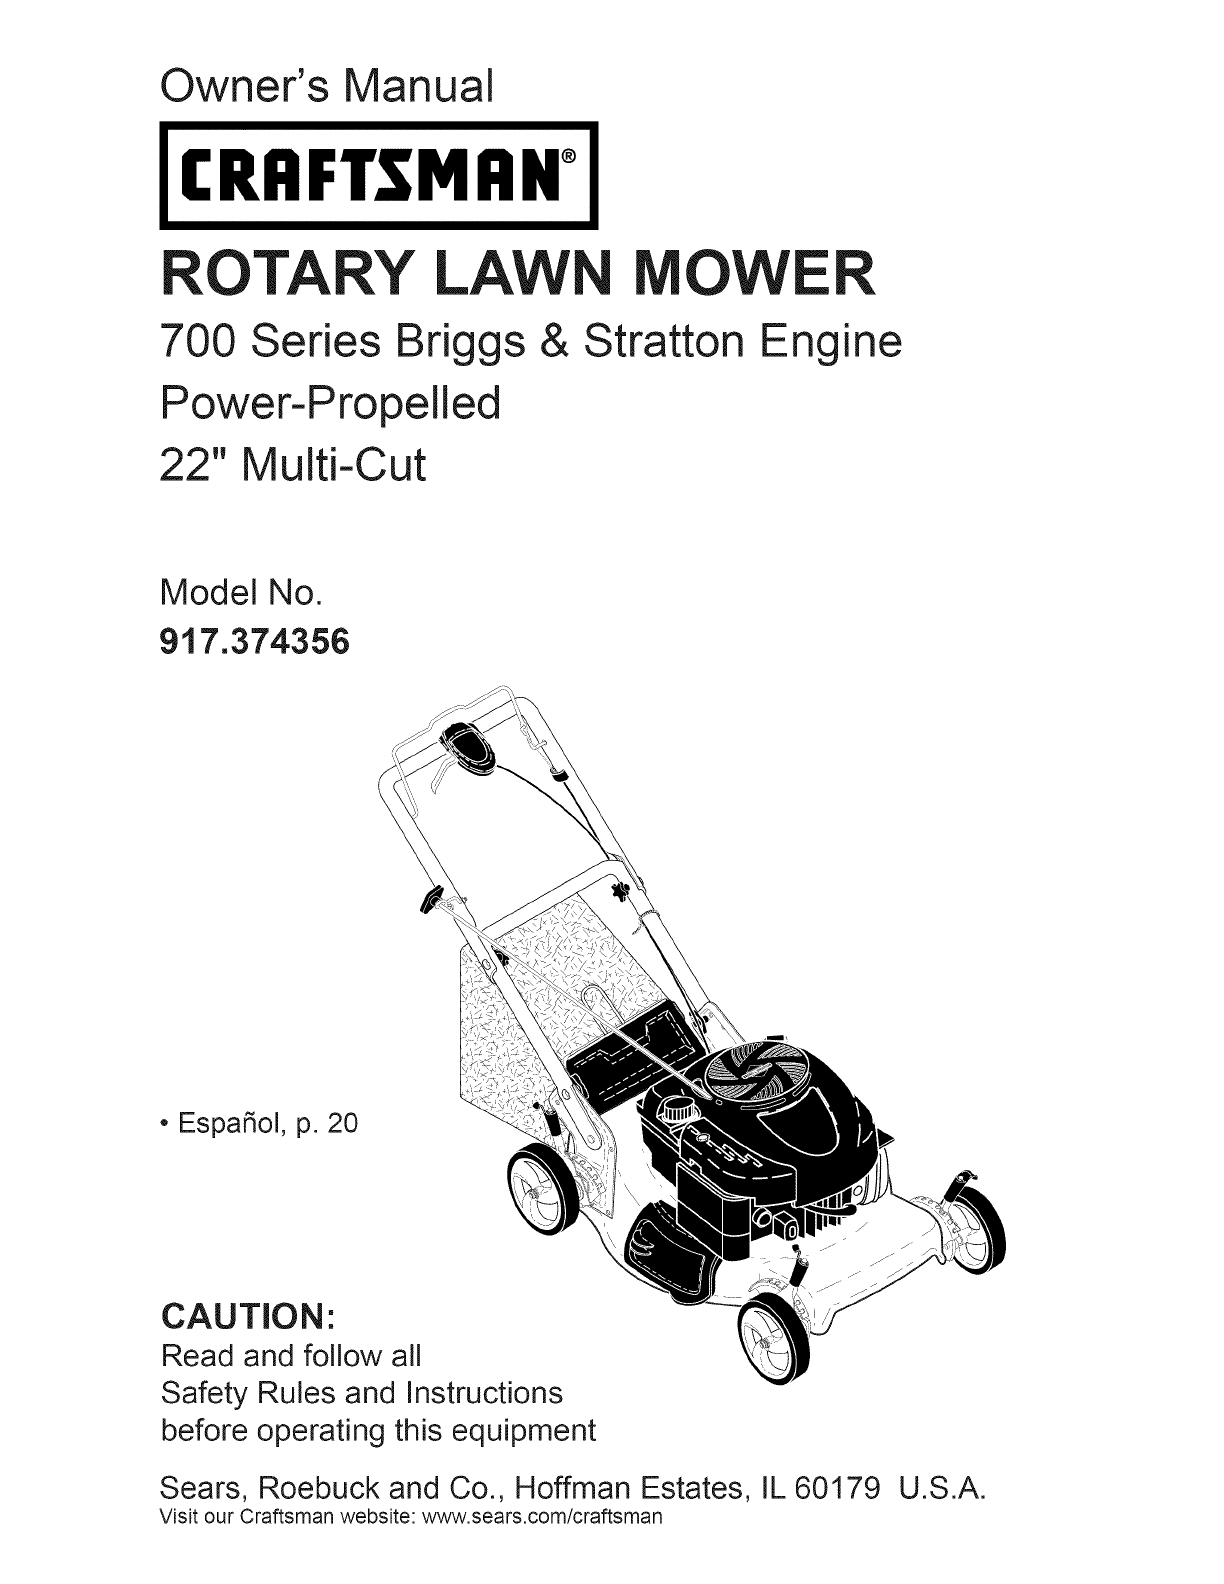 craftsman lawn mower 917 374356 user guide manualsonline com rh phone manualsonline com service manual for craftsman lawn tractor service manual for craftsman lawn tractor